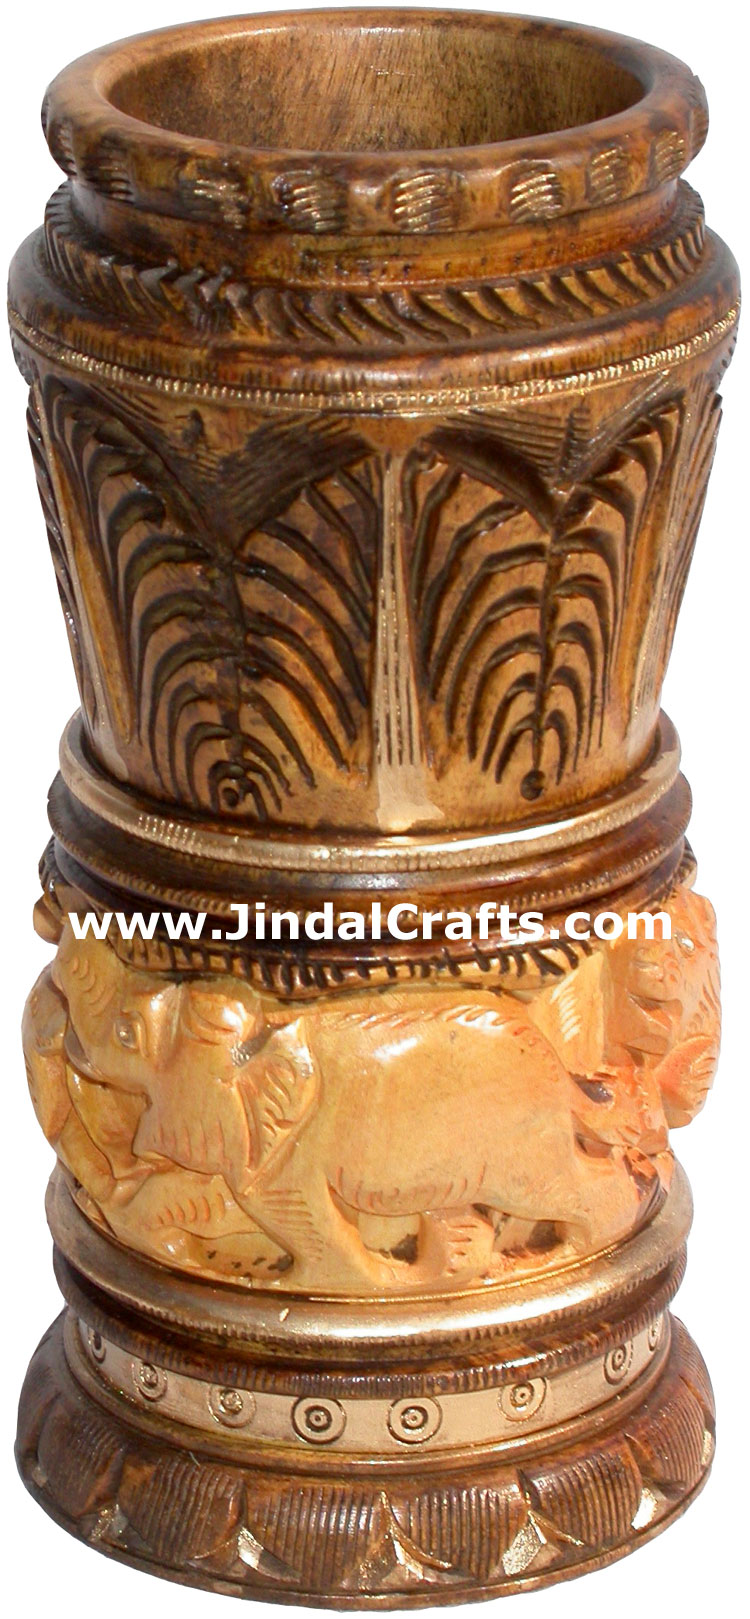 Hand Carved Antique Look Wooden Pen Pencil Holder Stand Jungle Art Elephant Lion